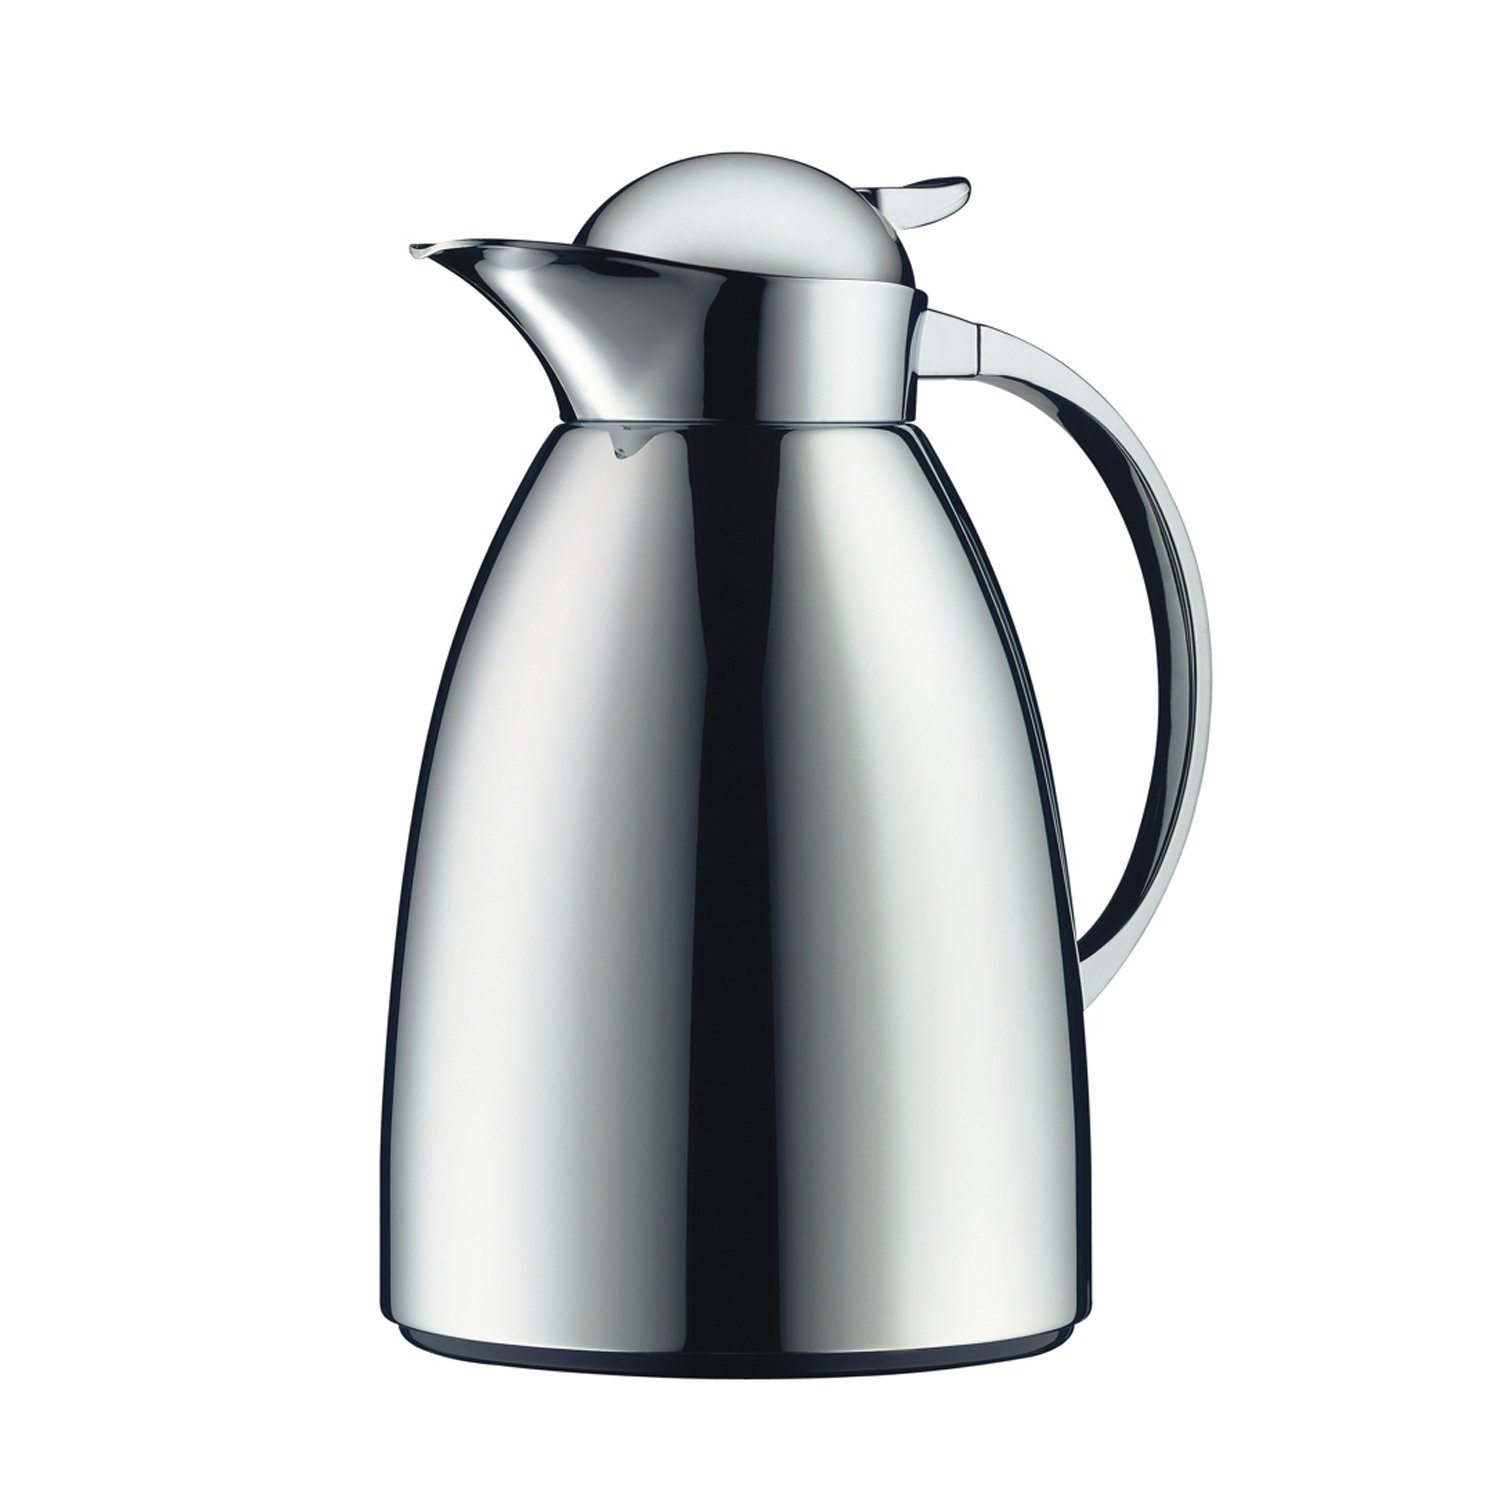 Service Ideas 767000100 Alfi Albergo Stainless Server, 1 Liter